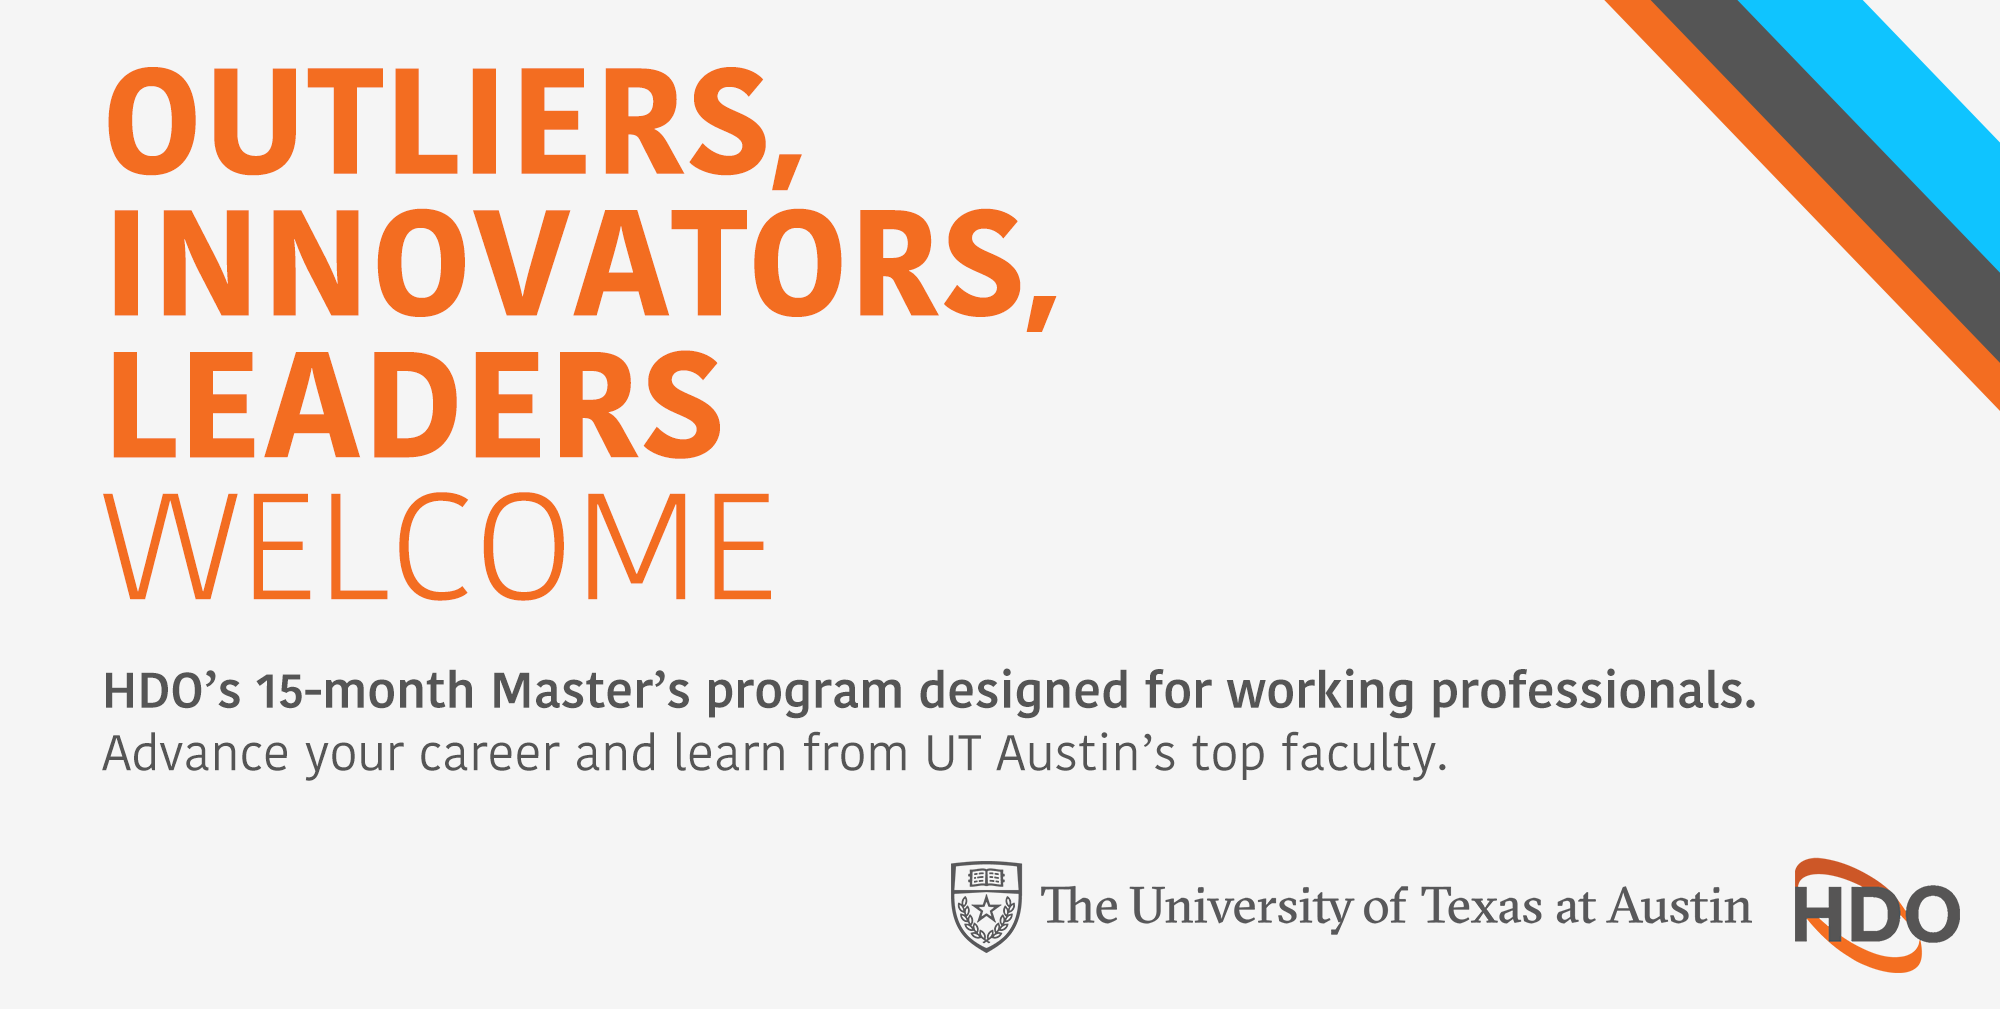 UT Austin's 15-month Master's Degree designed for working professionals. An innovative graduate program offered by The University of Texas at Austin.